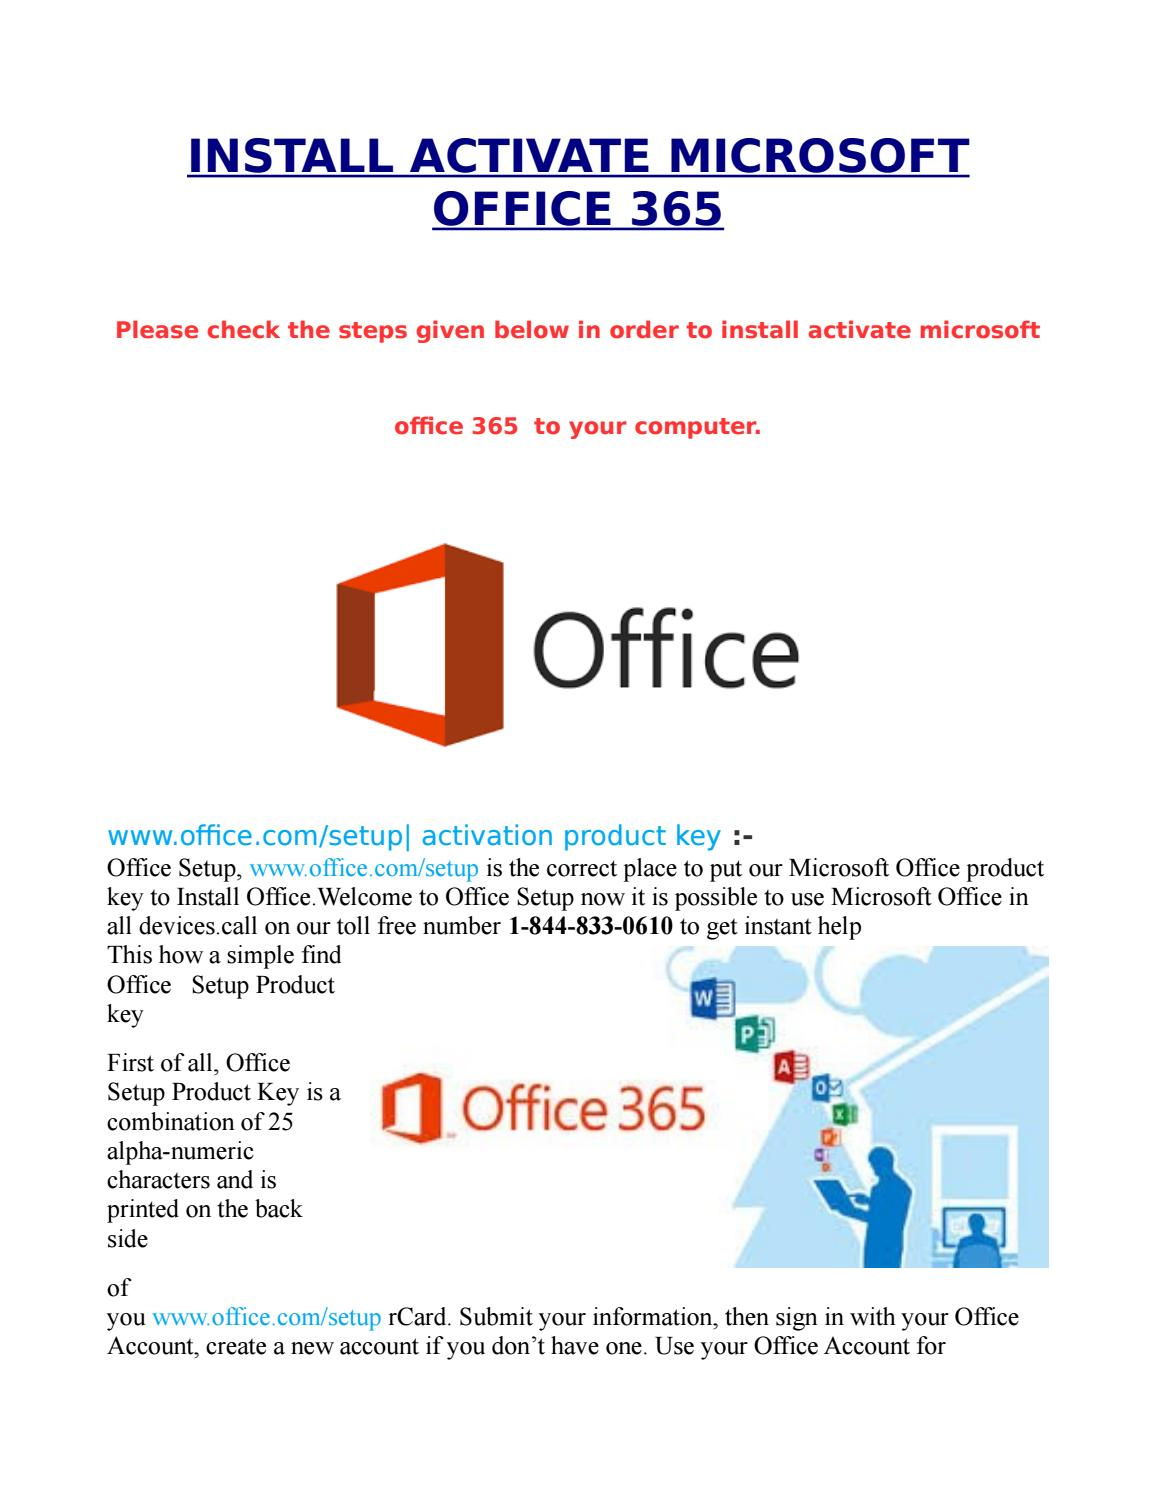 Activate office 365 21 by emailtosarika86 - issuu